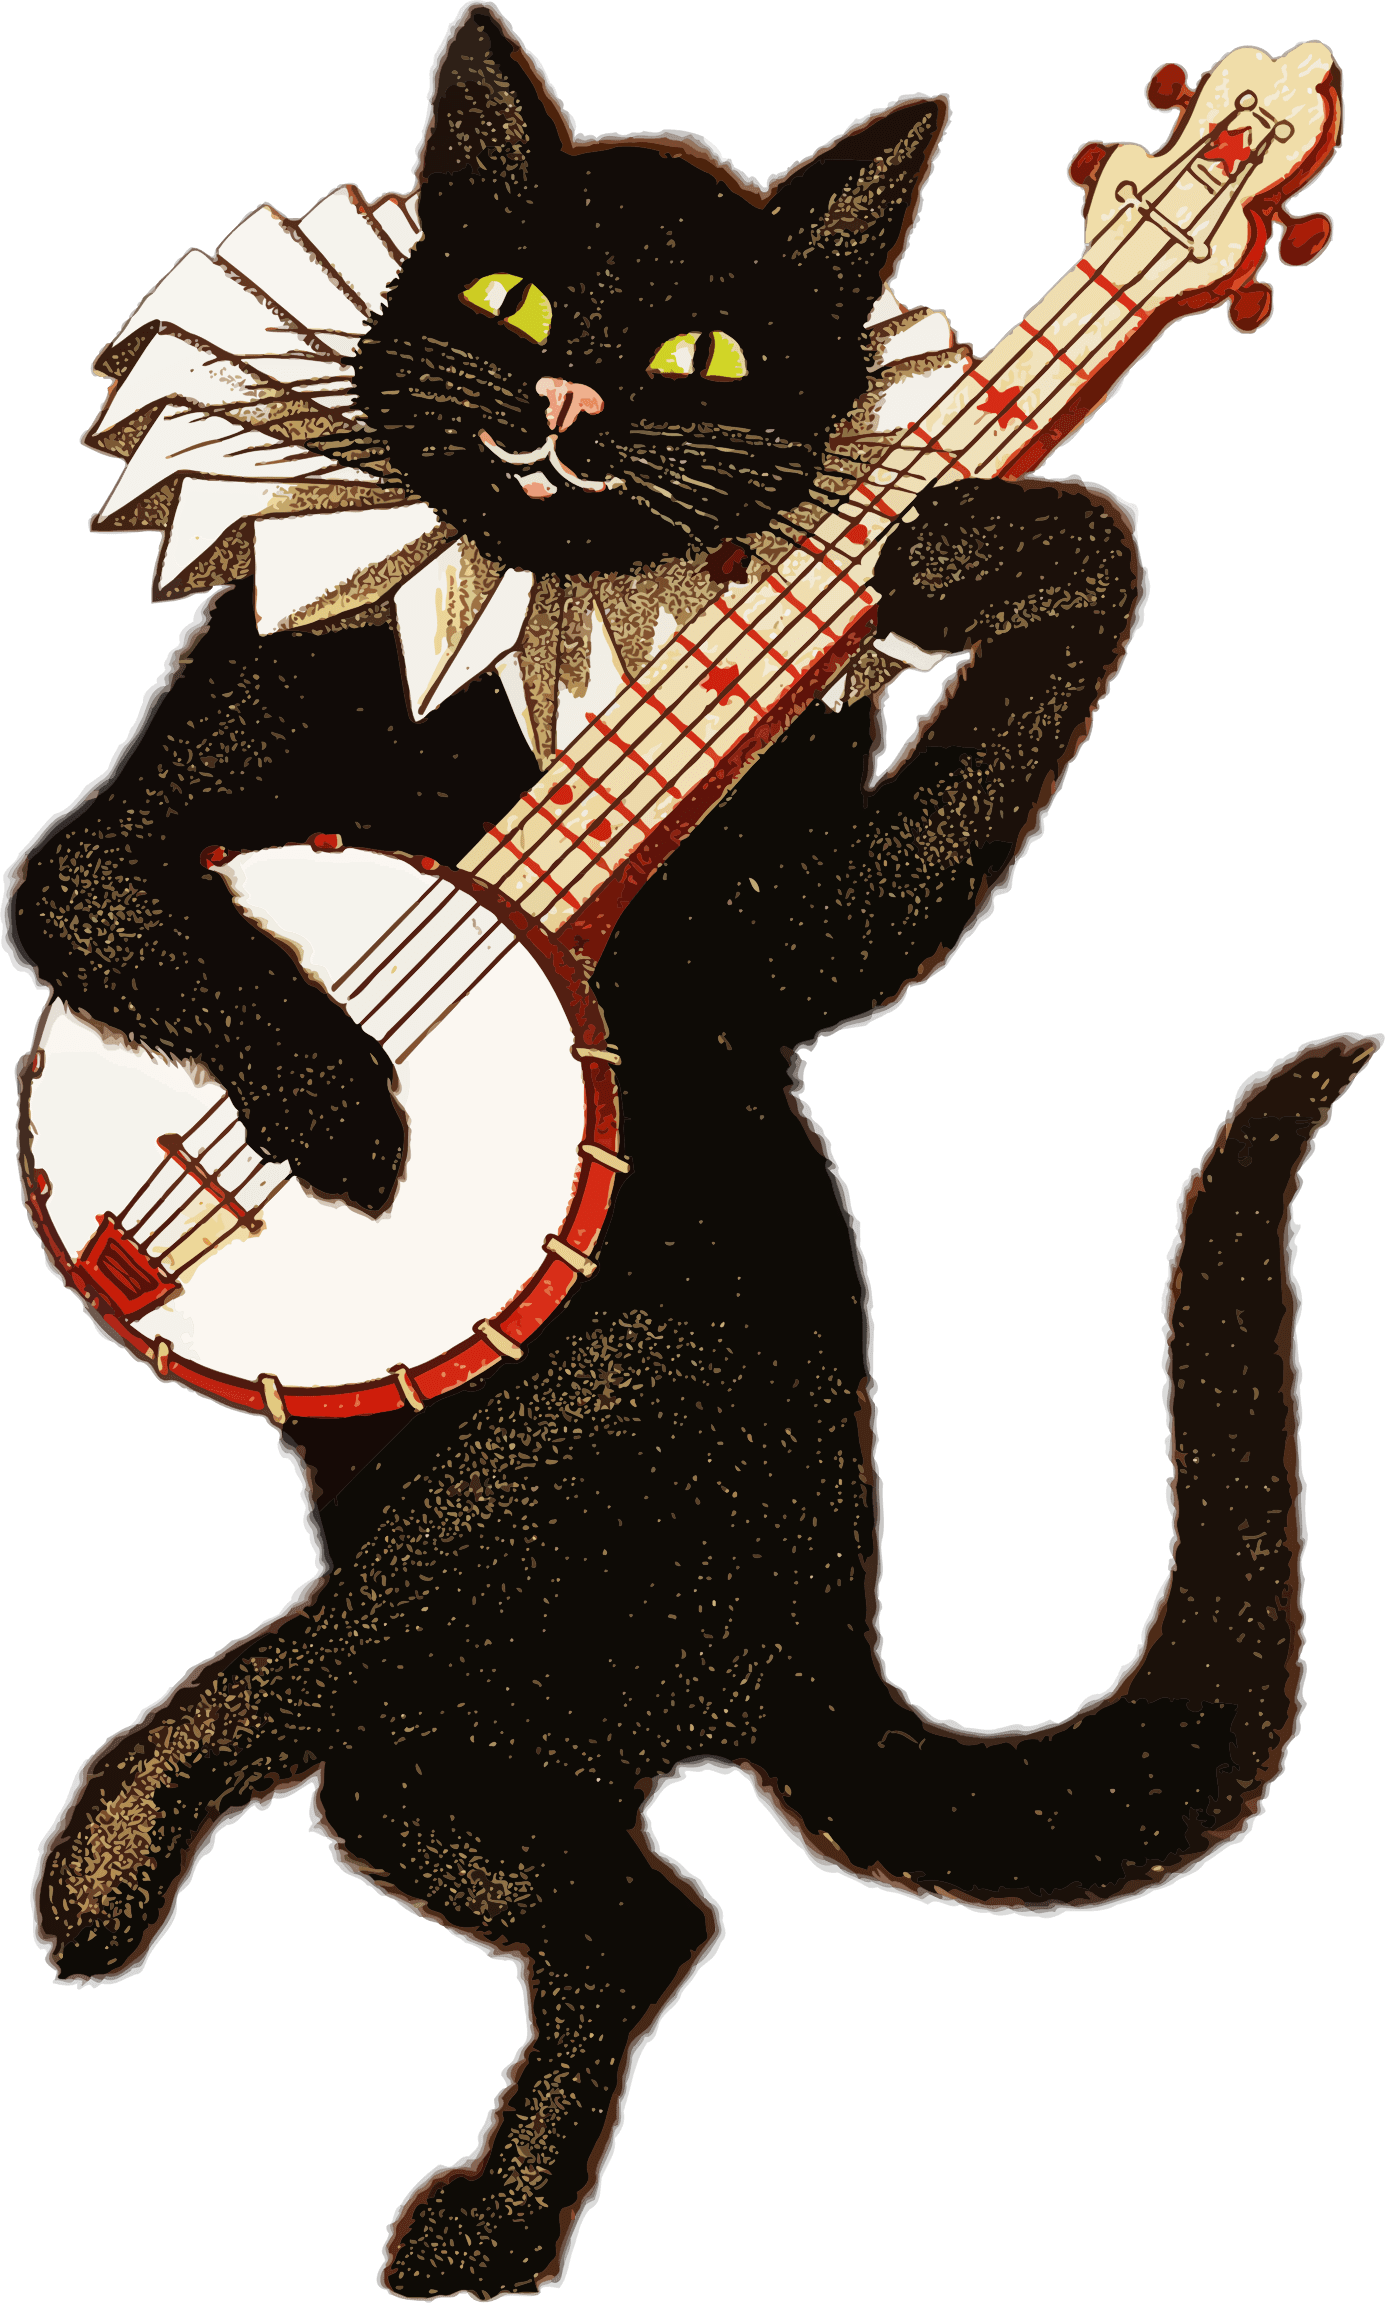 Vintage cat playing banjo transparent png stickpng for Retro images